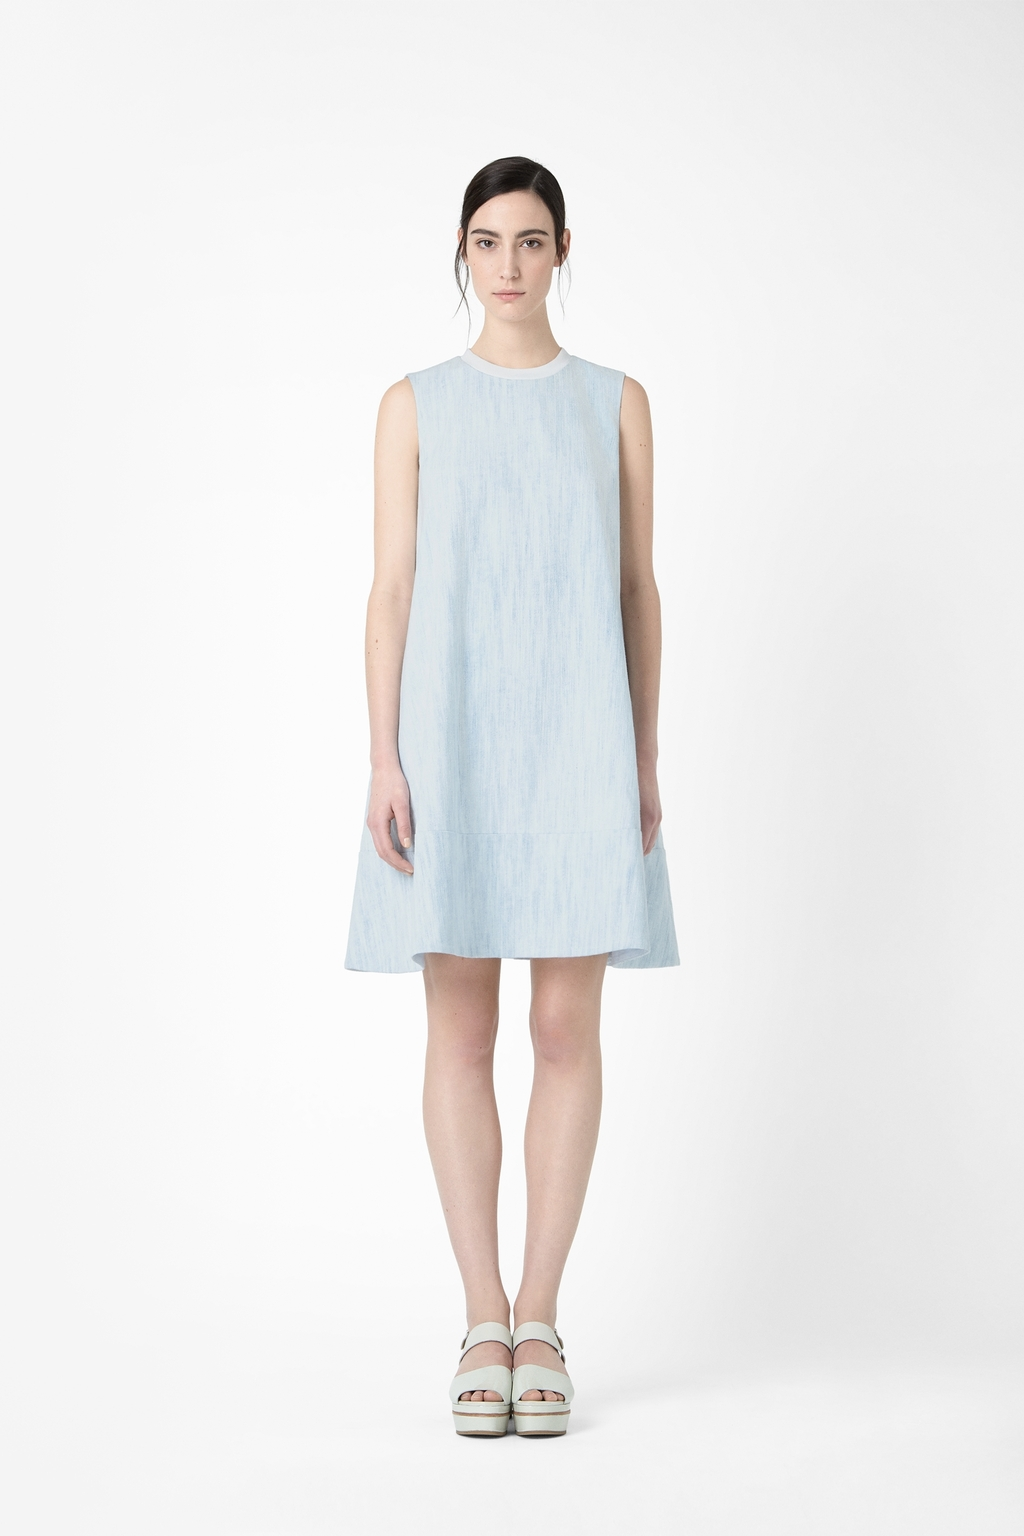 A Line Denim Dress - style: shift; pattern: plain; sleeve style: sleeveless; predominant colour: pale blue; occasions: casual, holiday, creative work; length: just above the knee; fit: soft a-line; fibres: cotton - 100%; neckline: crew; sleeve length: sleeveless; texture group: denim; pattern type: fabric; trends: sorbet shades; season: s/s 2014